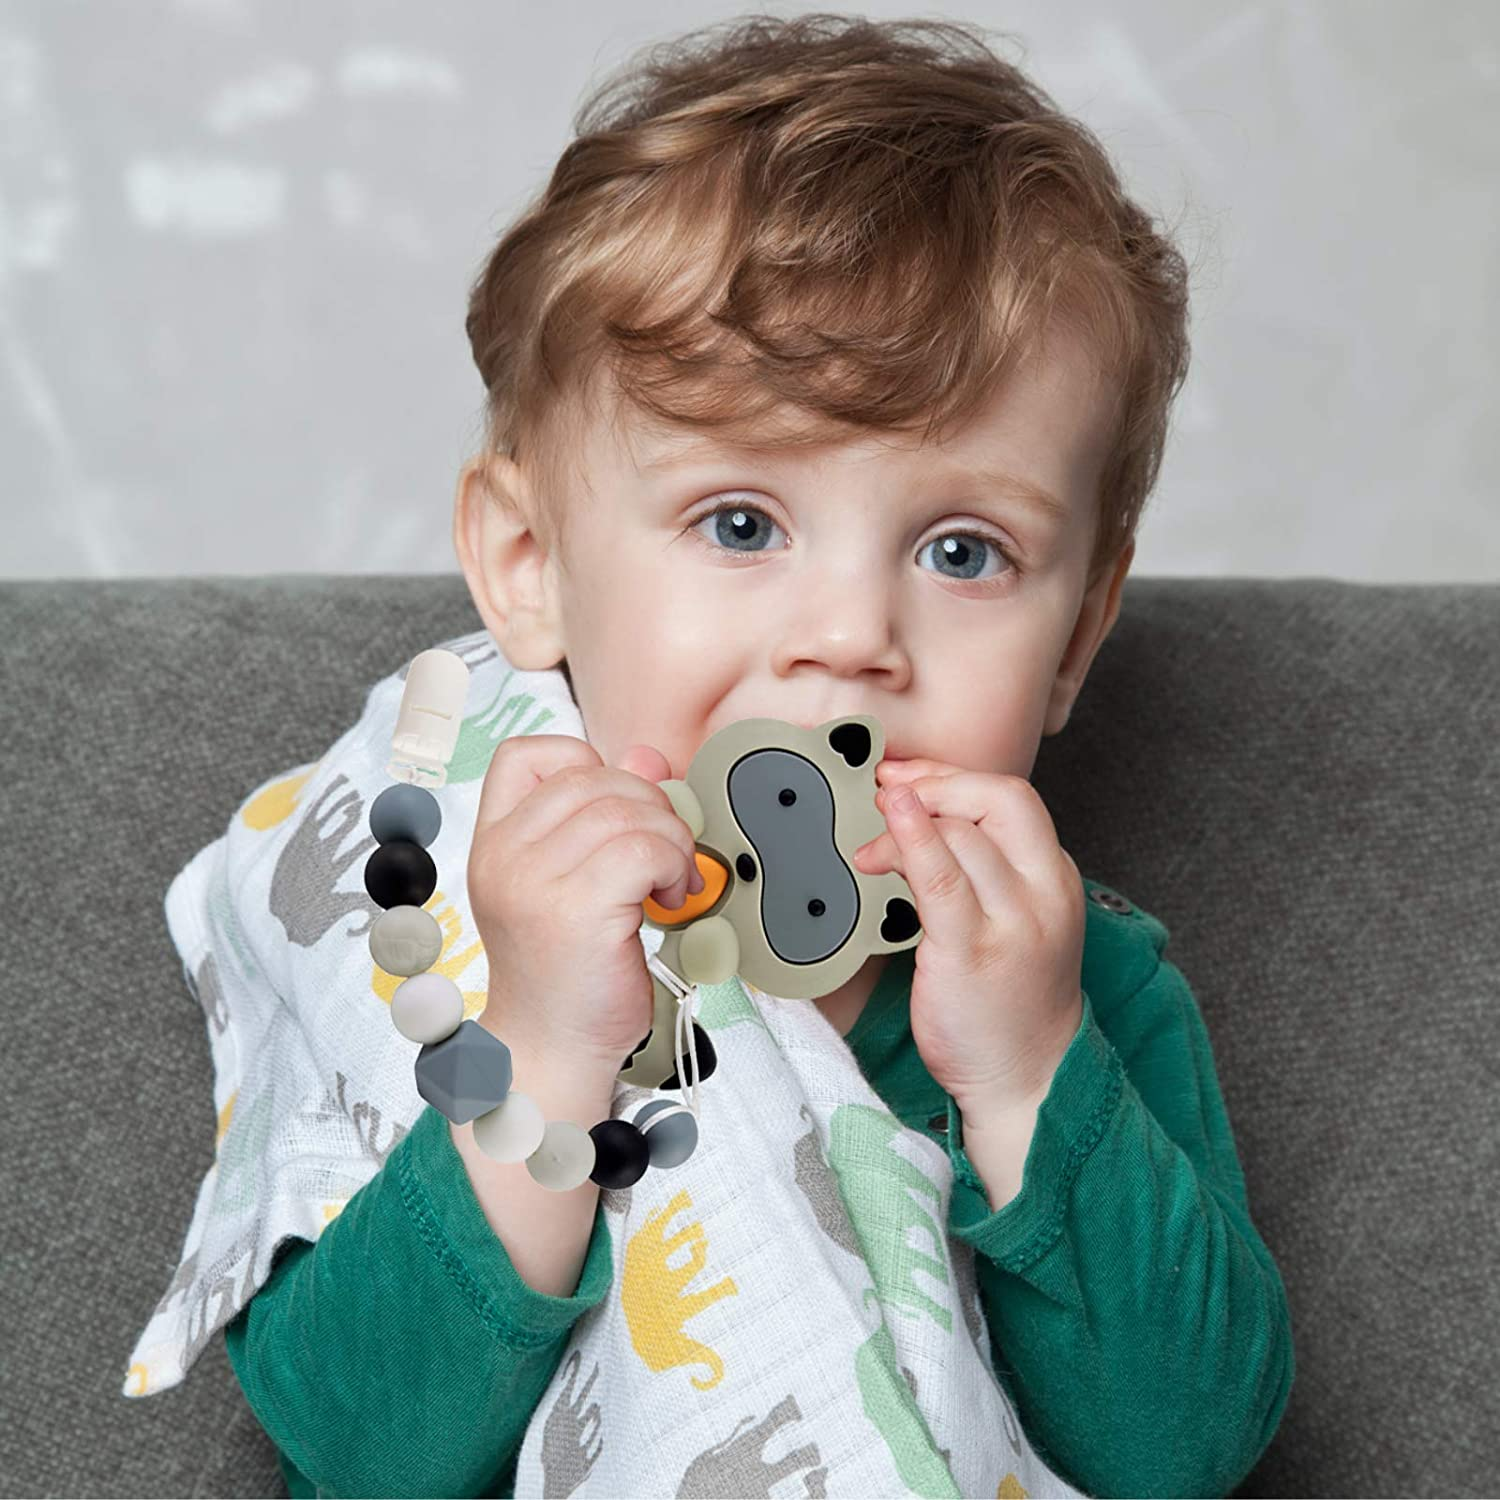 Gray Raccoon Design for Boys and Girls Silicone Teethers with Relief Beads Binky Holder and Pacifier Clips Baby Teething Toys for 0-6 6-12 Months Babies